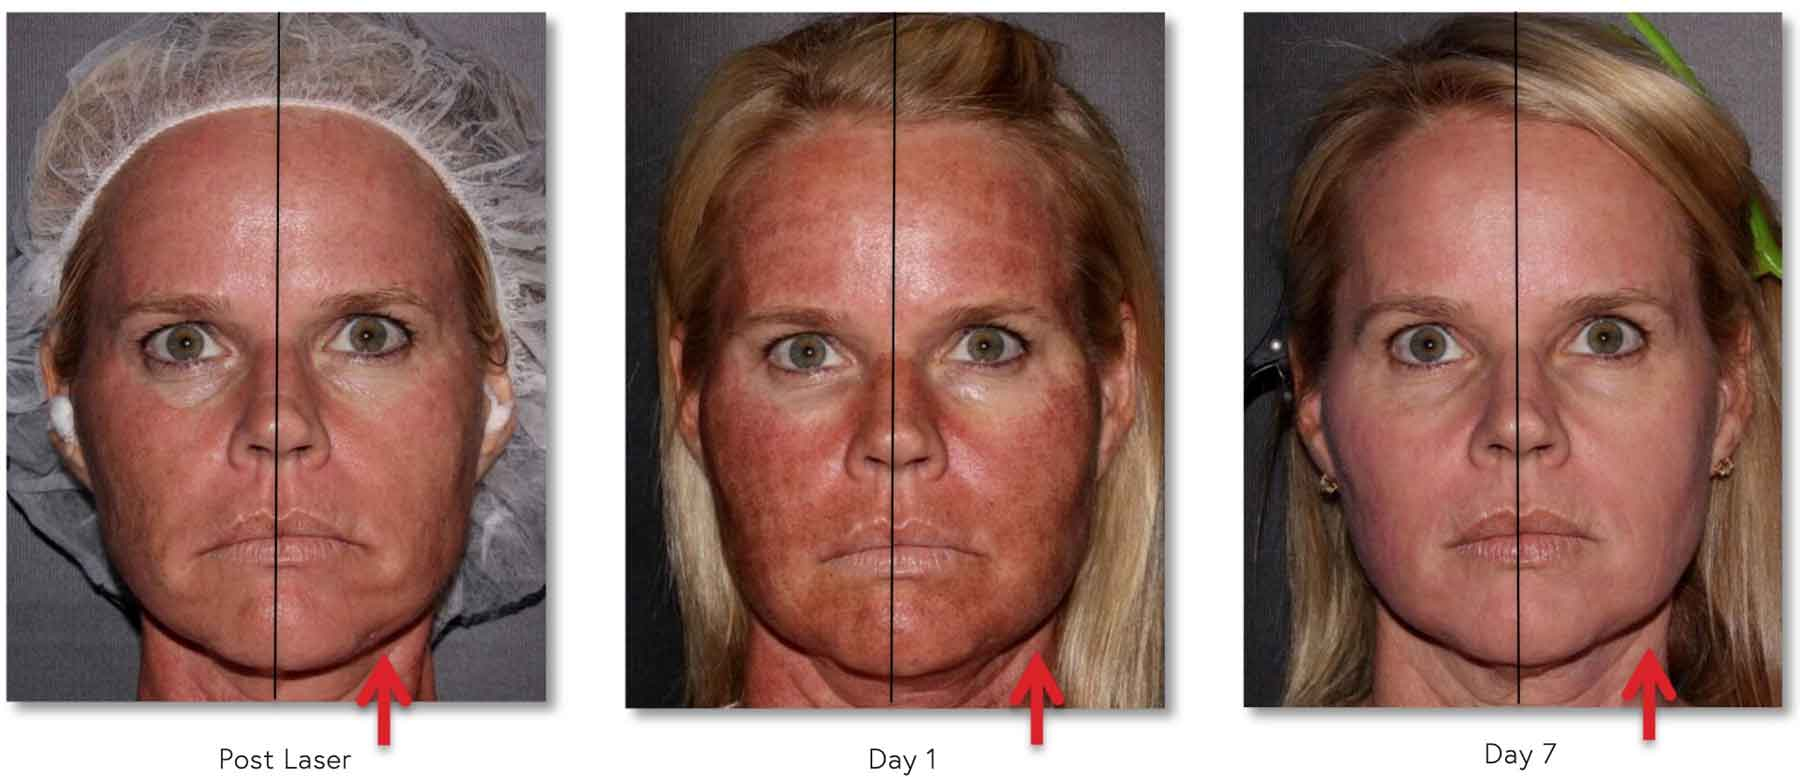 48yoF with decreased Erythema (redness) on side treated with CALECIM® Serum